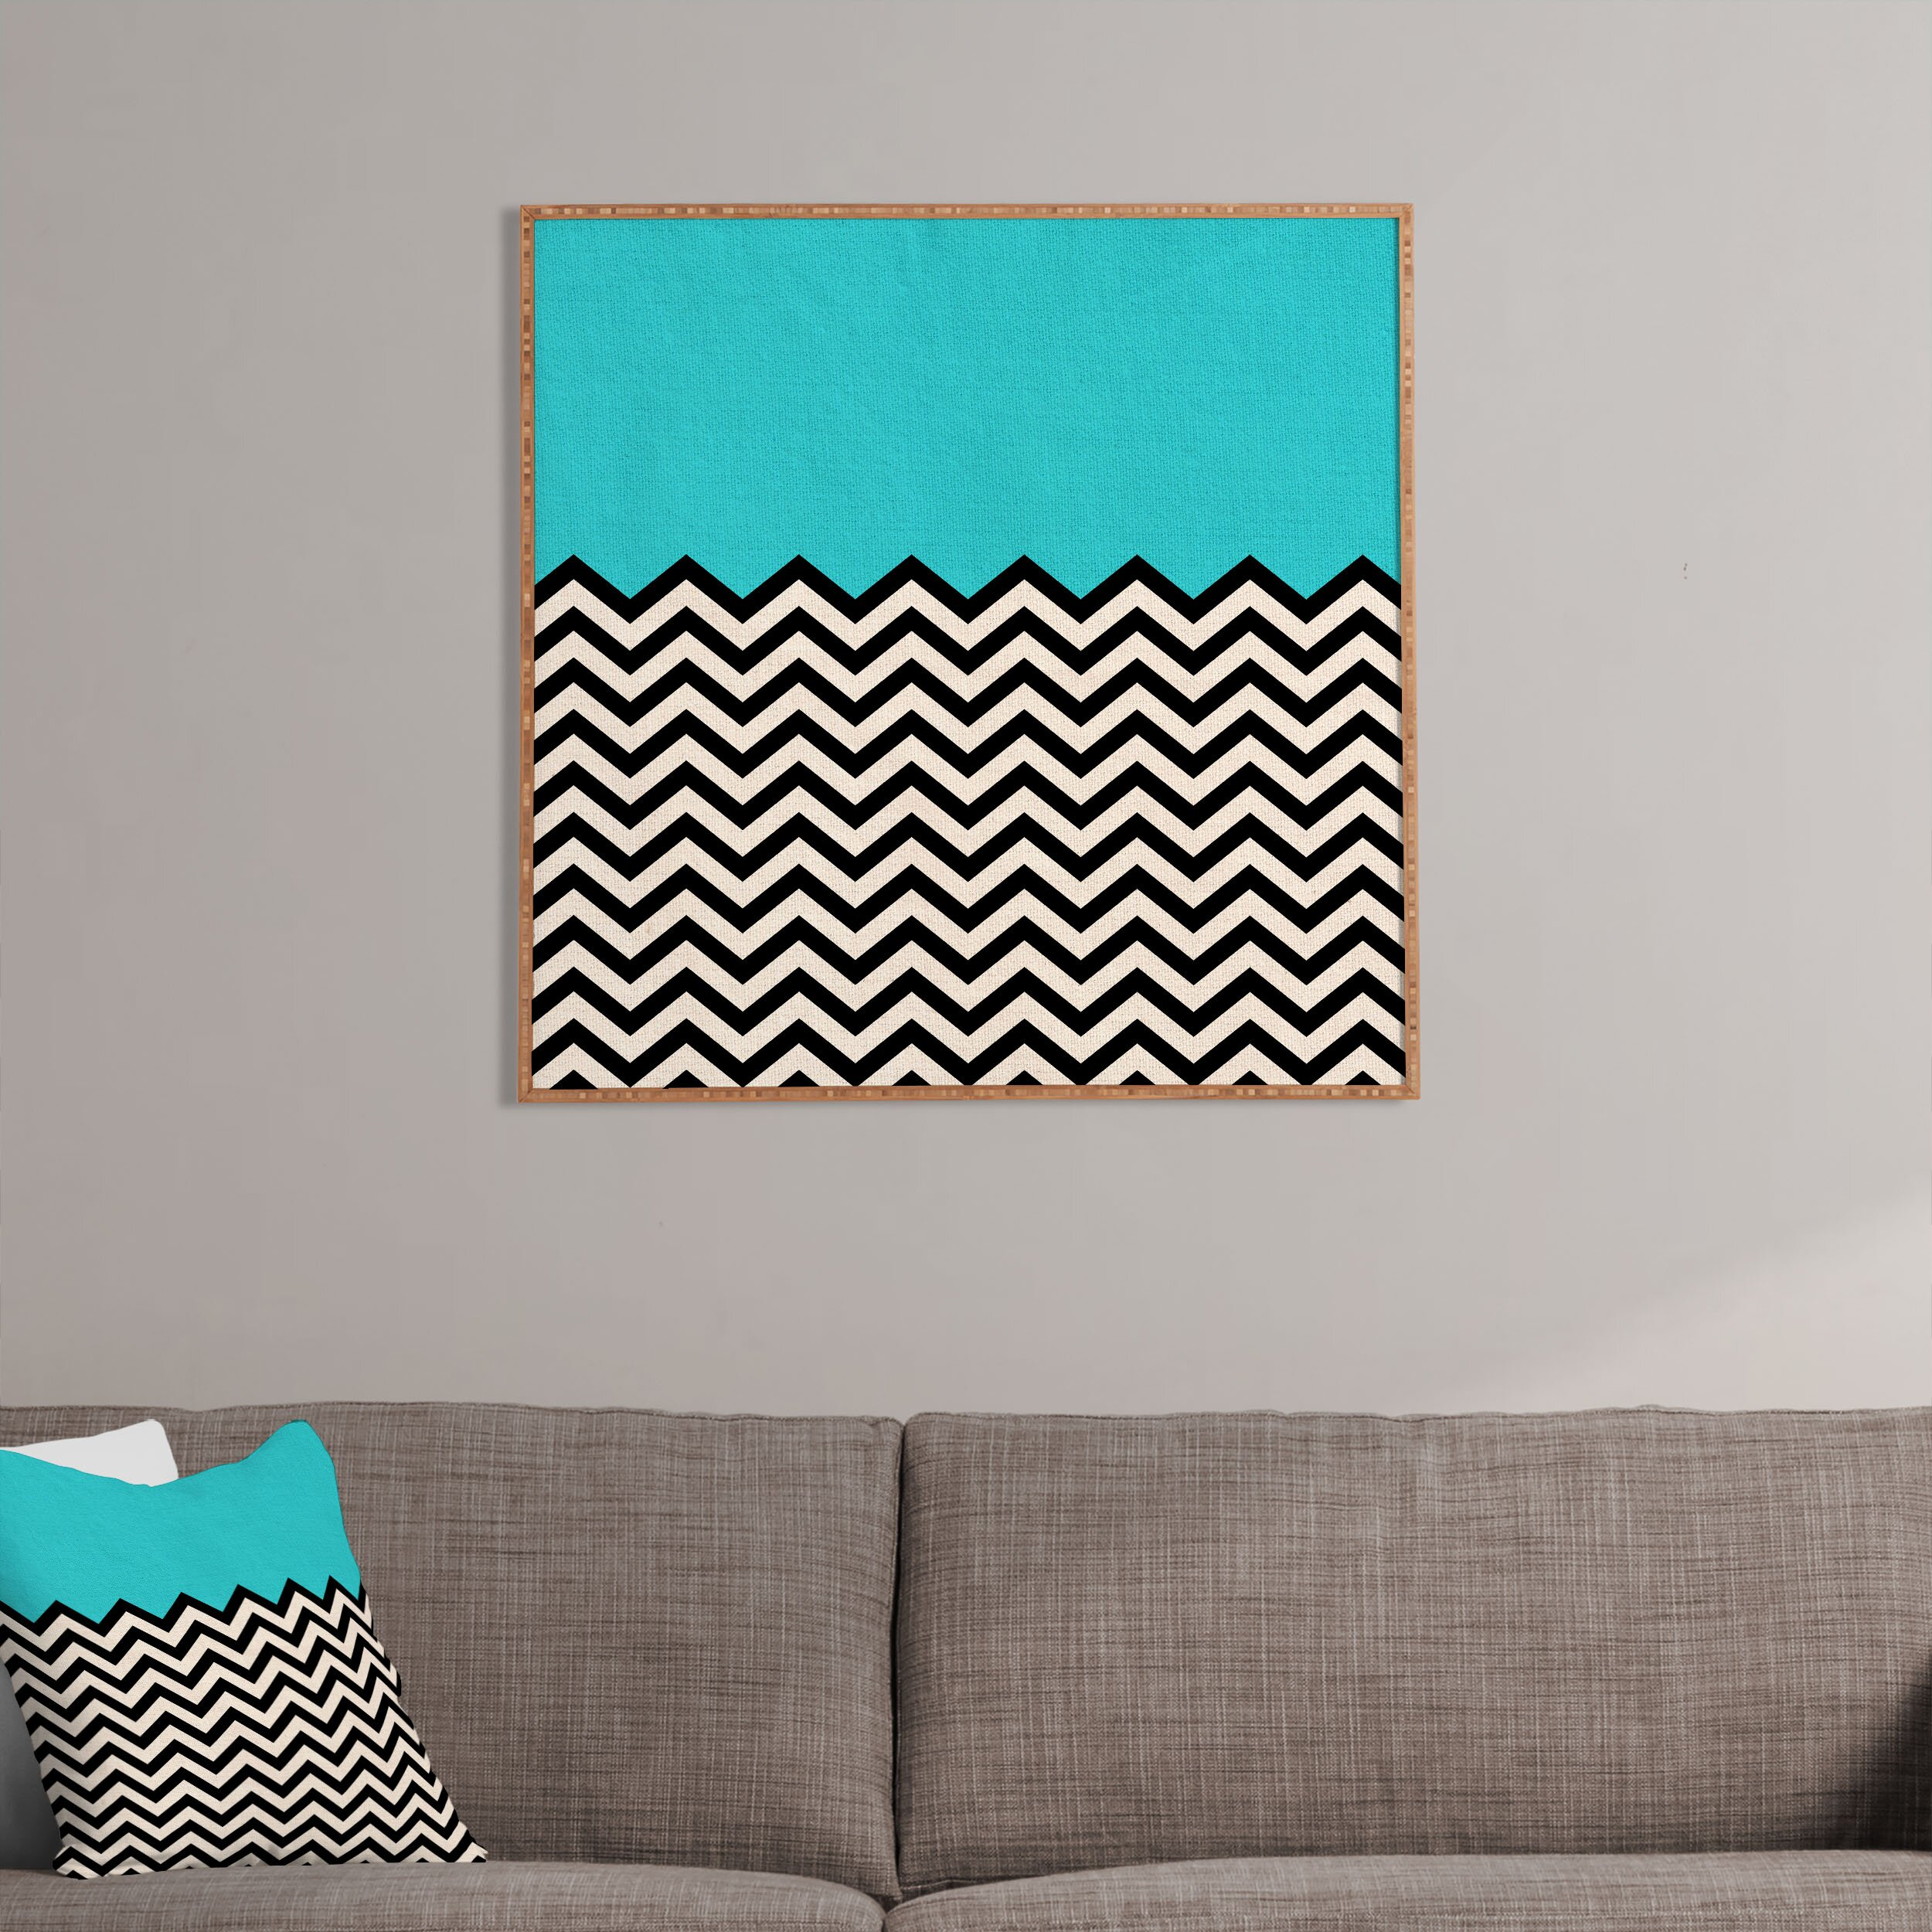 Deny designs follow the sky by bianca green framed graphic art in blue